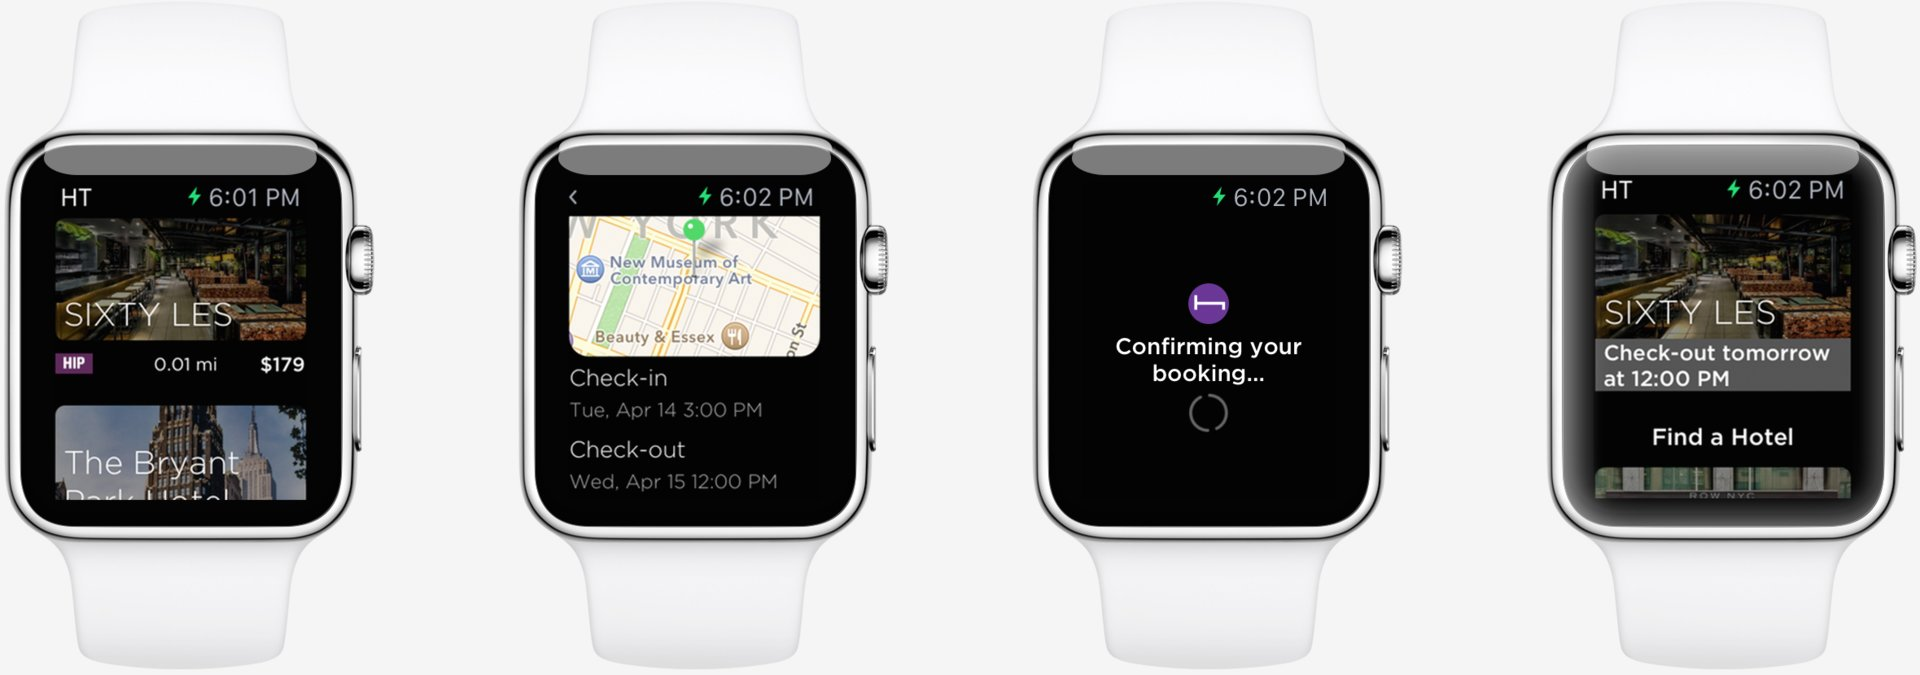 apple watch app 4